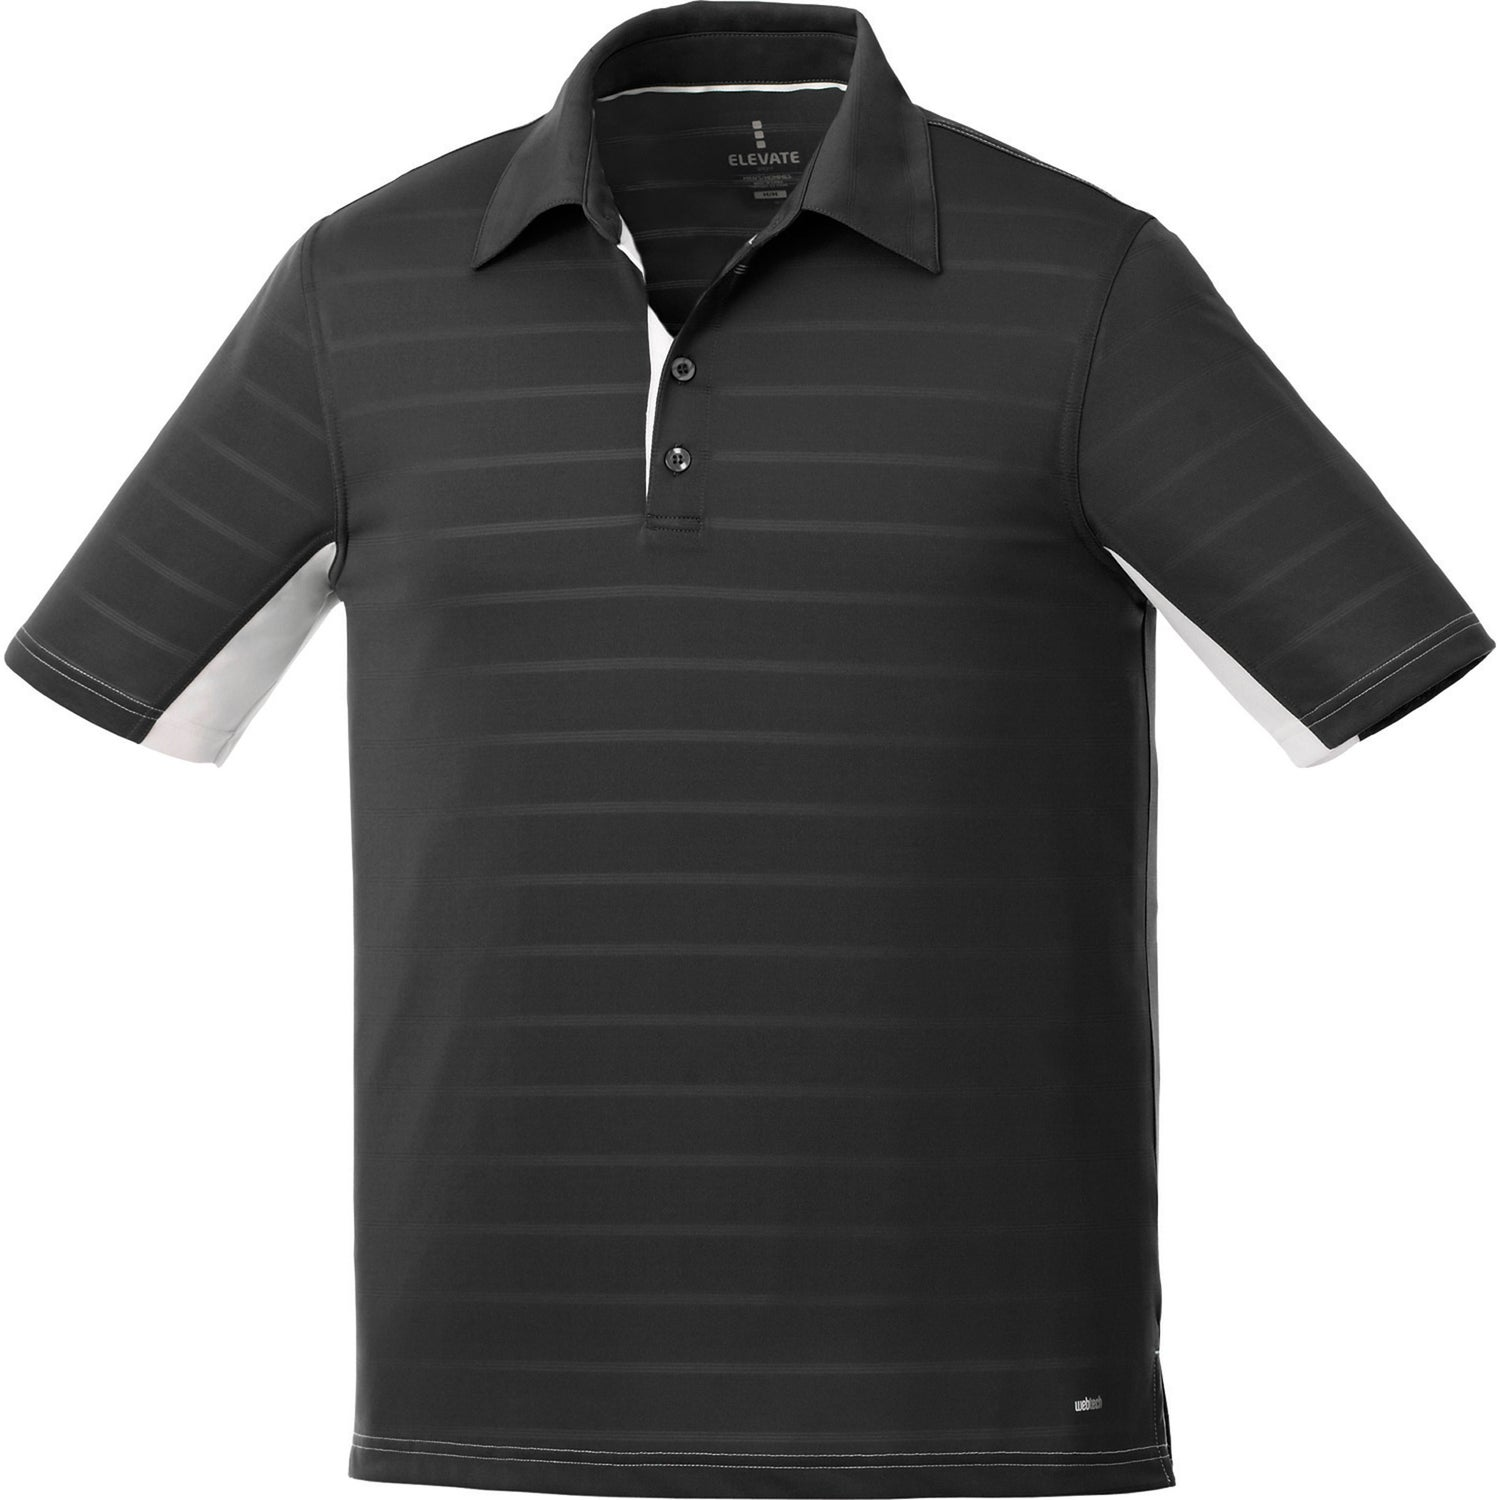 Promotional Mens Prescott Short Sleeve Polo Shirt By Trimarks With